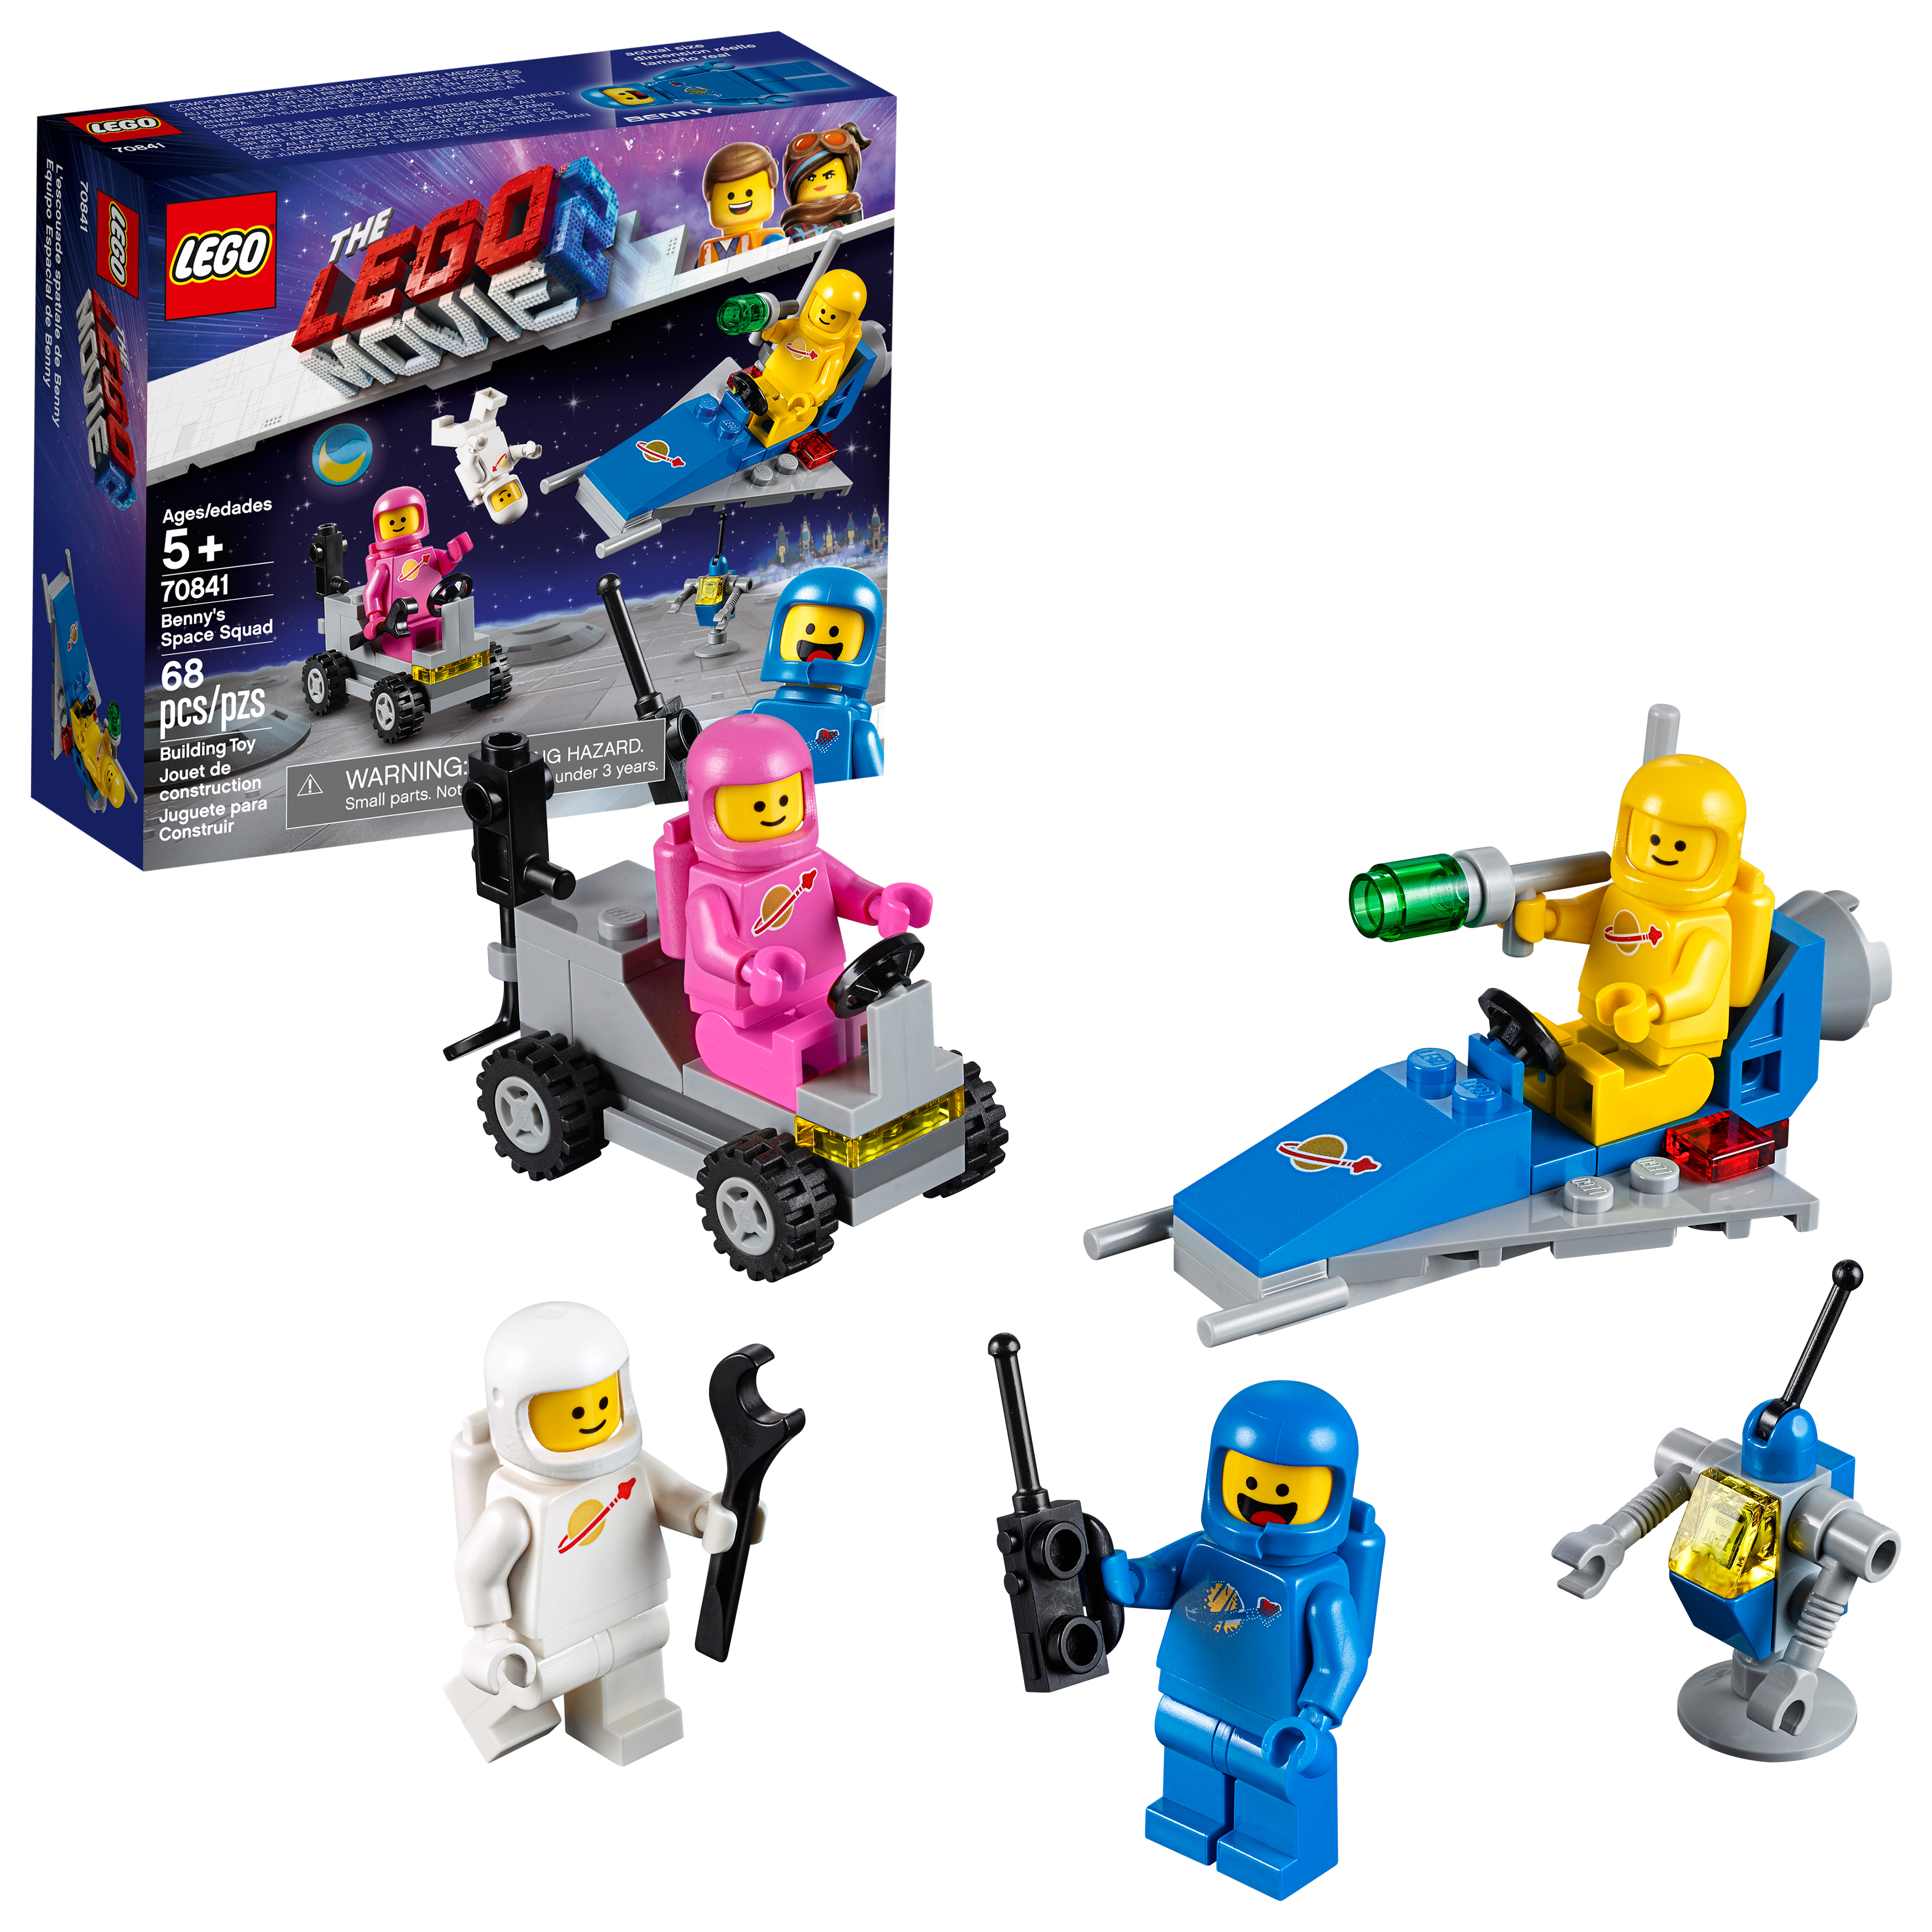 THE LEGO MOVIE 2 Benny's Space Squad 70841